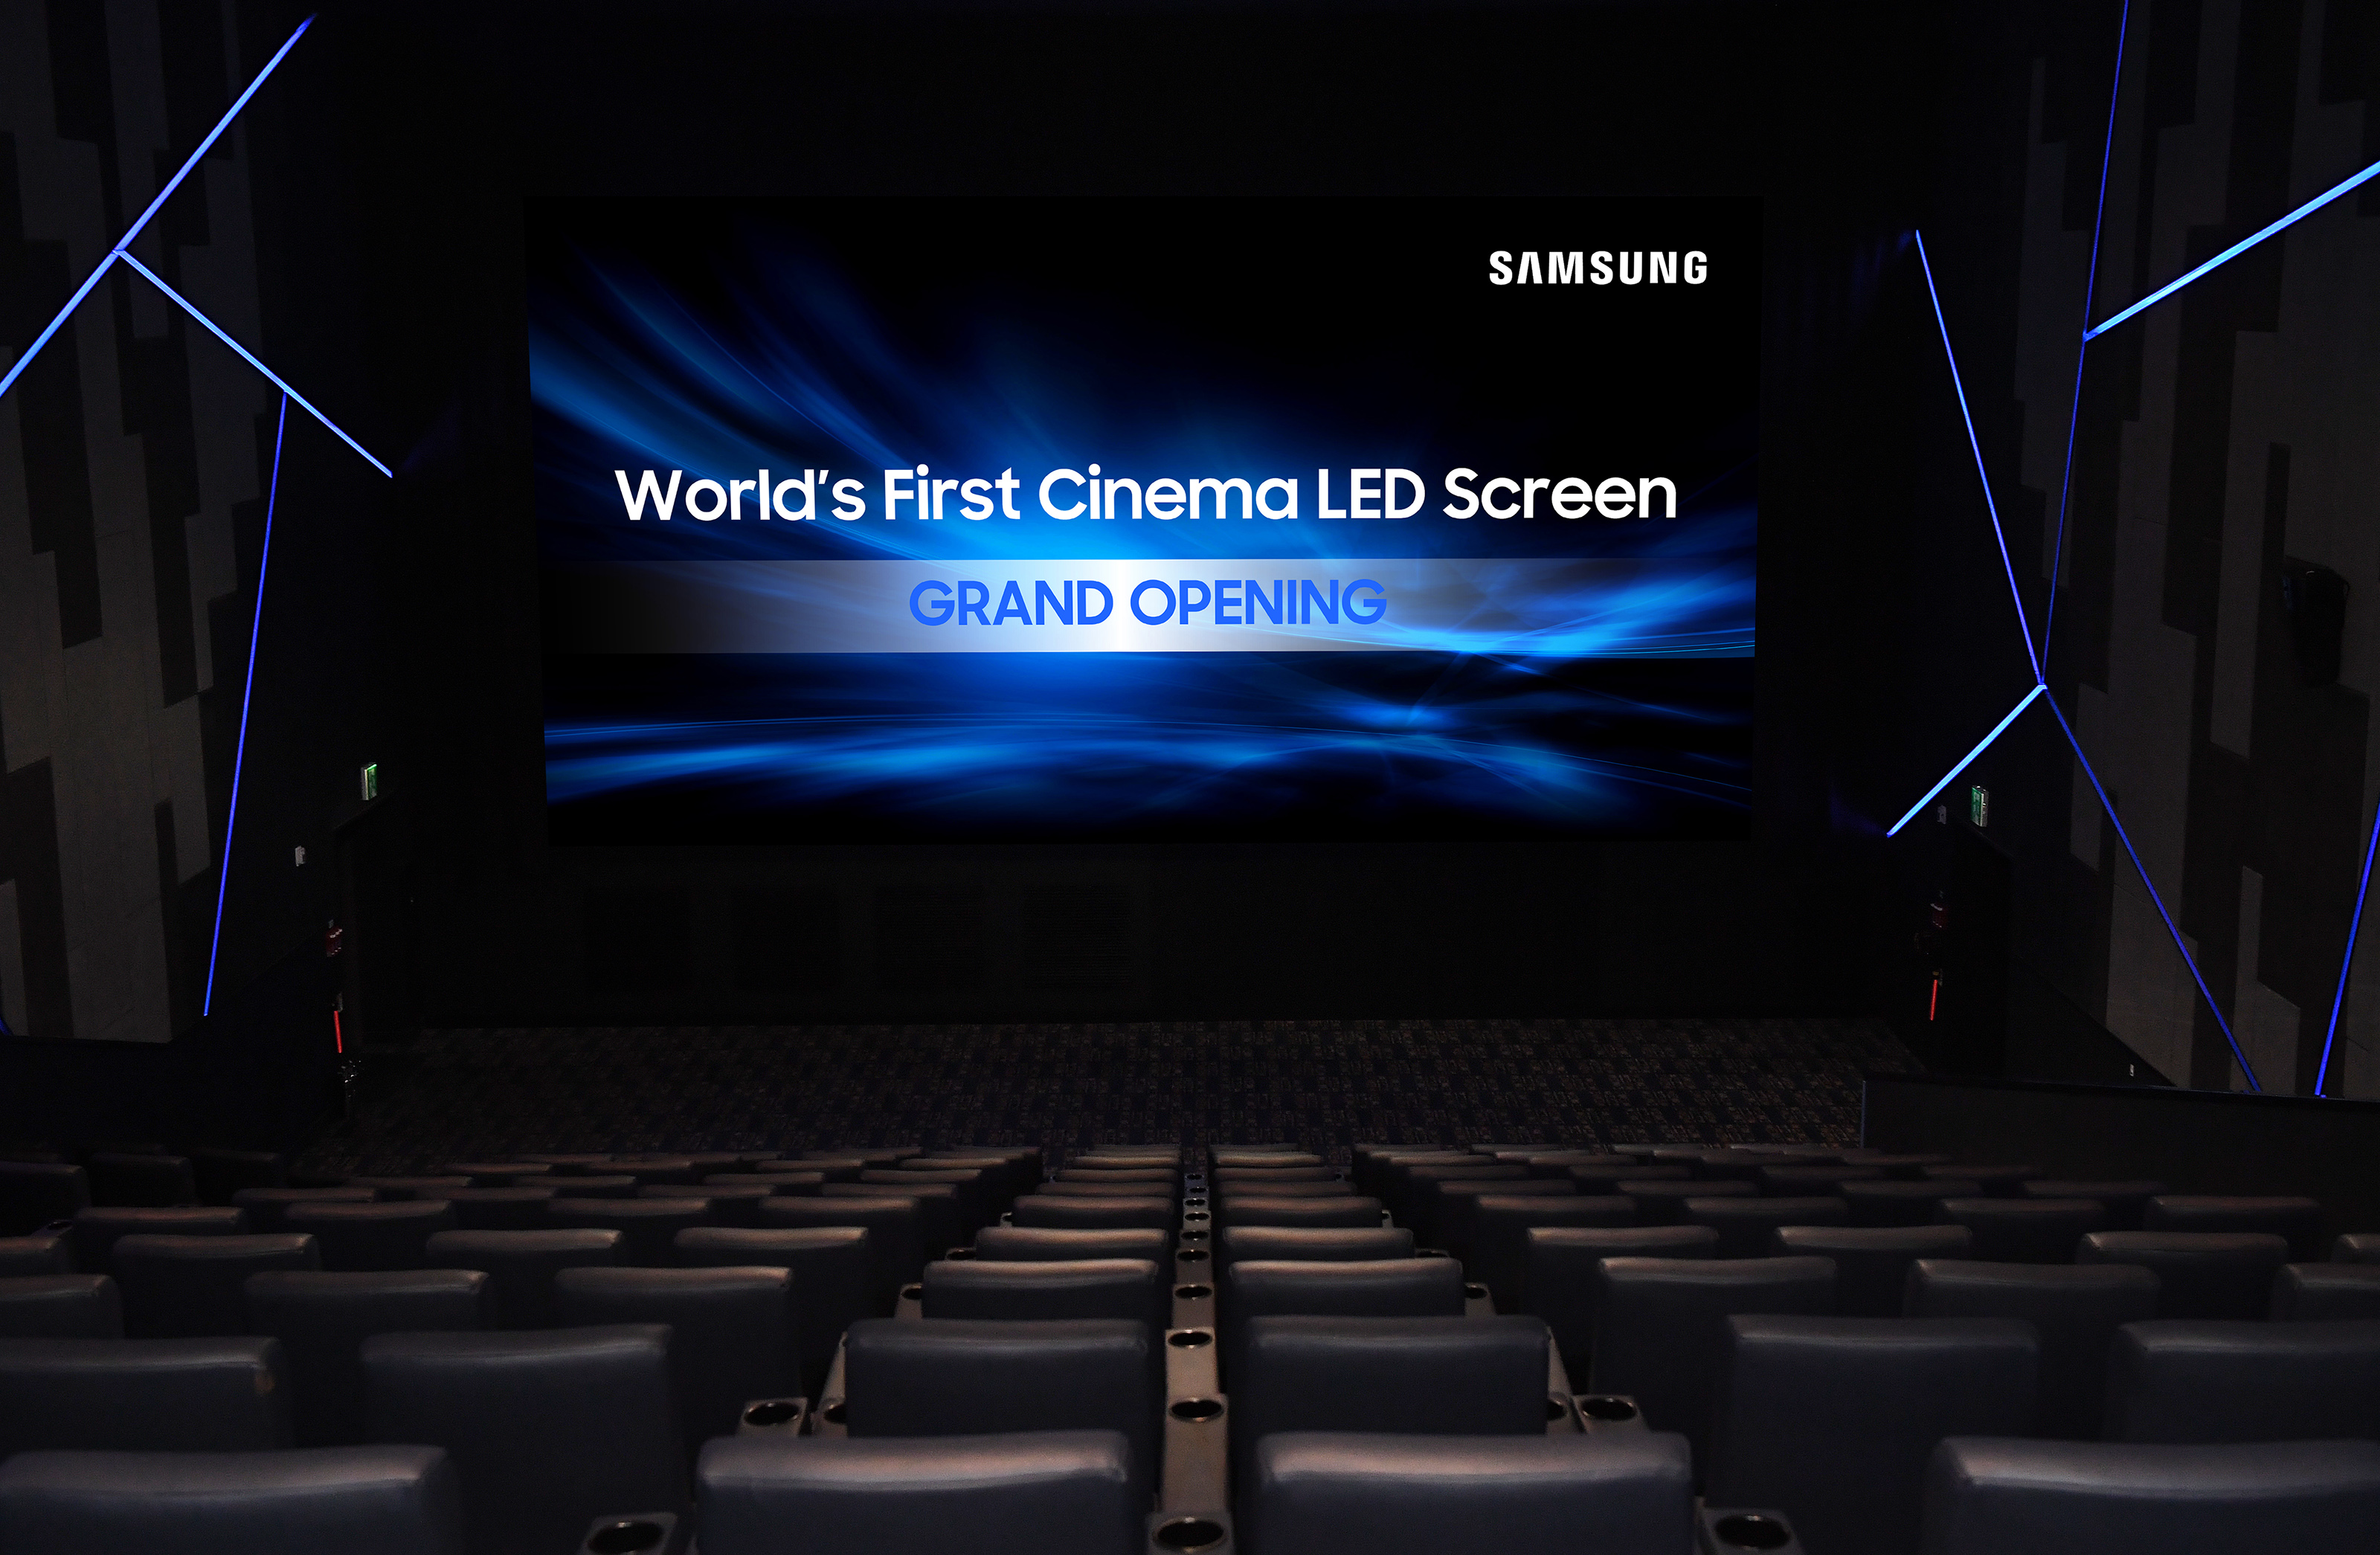 Samsung Electronics models are introducing the world's first 'Cinema LED' installed at the movie theater 'SUPER S' of Lotte Cinema at World Tower in Jamsil, Seoul on July 13.